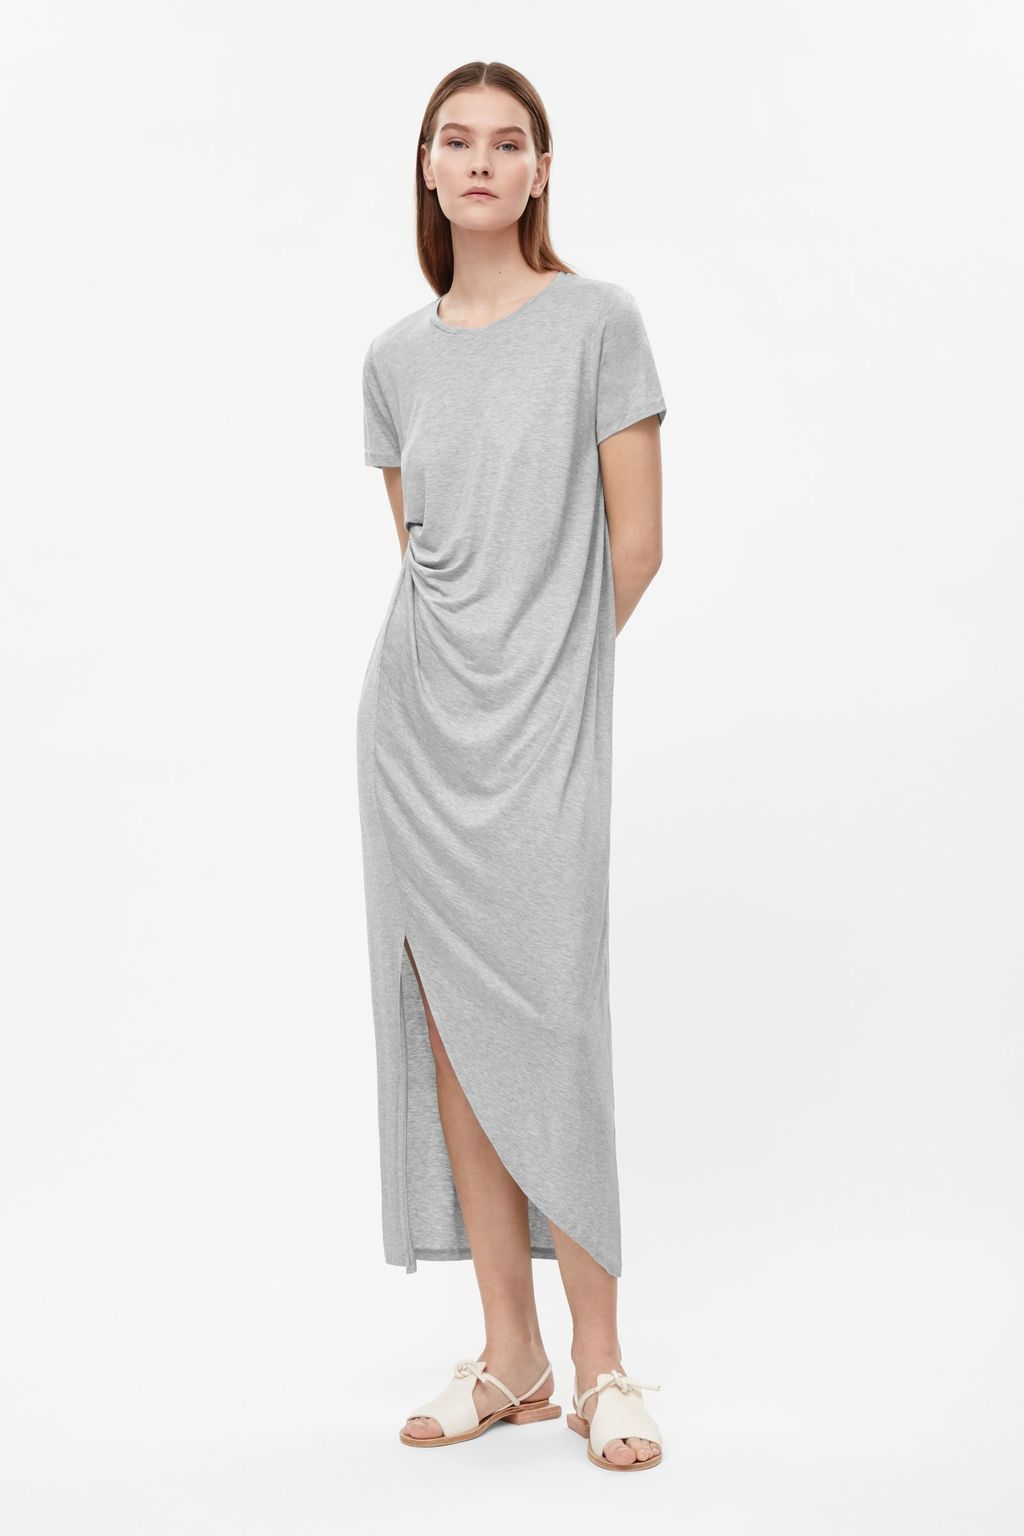 Draped Jersey Dress - style: shift; neckline: round neck; pattern: plain; waist detail: flattering waist detail; predominant colour: light grey; occasions: casual, creative work; length: on the knee; fit: body skimming; fibres: viscose/rayon - 100%; sleeve length: short sleeve; sleeve style: standard; pattern type: fabric; texture group: jersey - stretchy/drapey; season: s/s 2016; wardrobe: basic